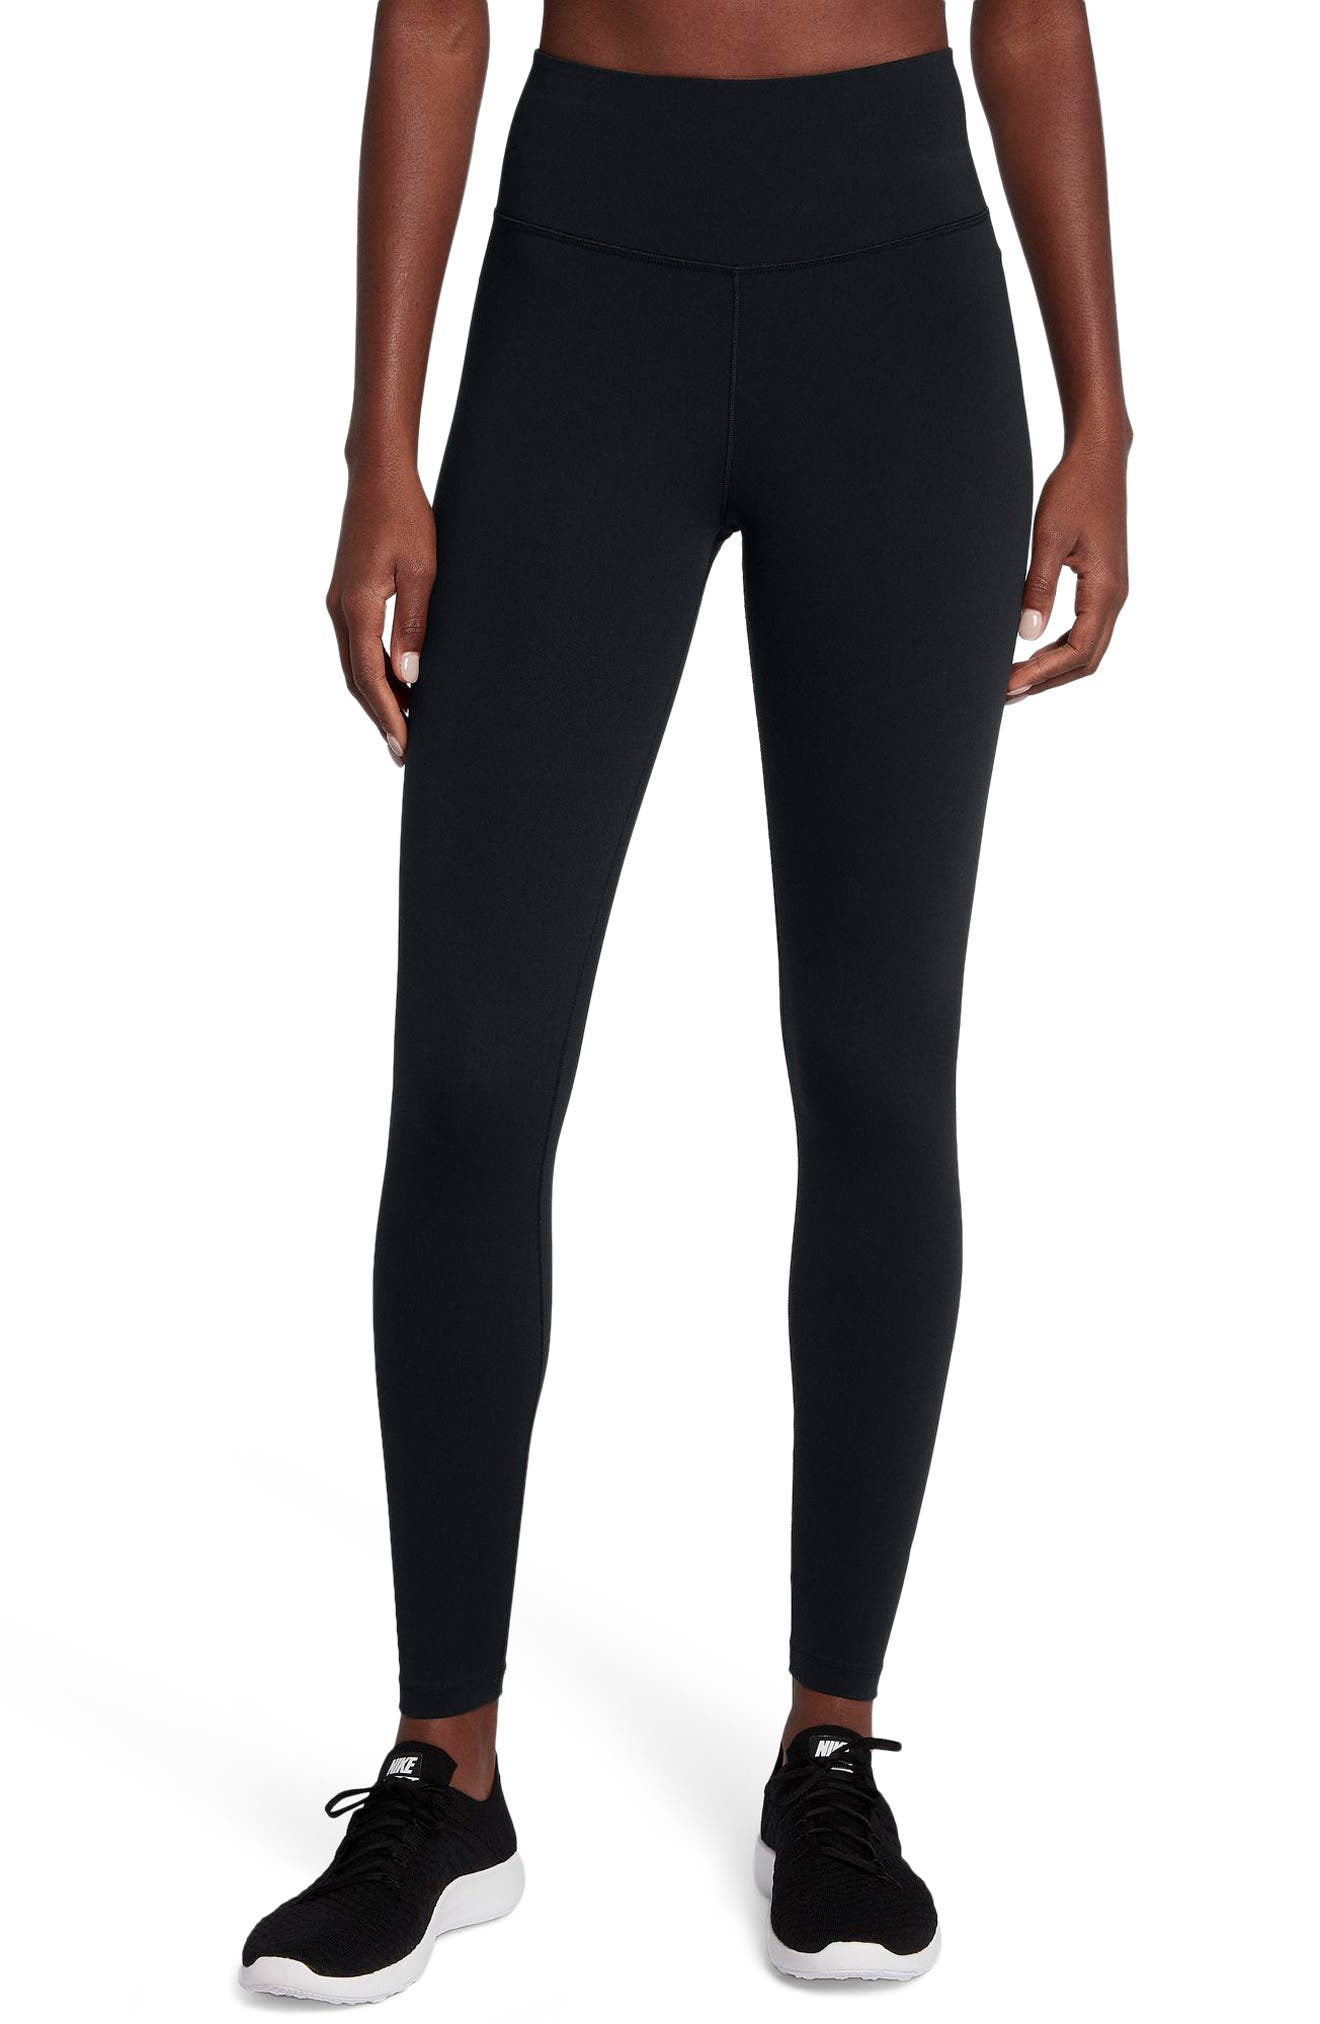 Nike Sculpt Lux Training Tights